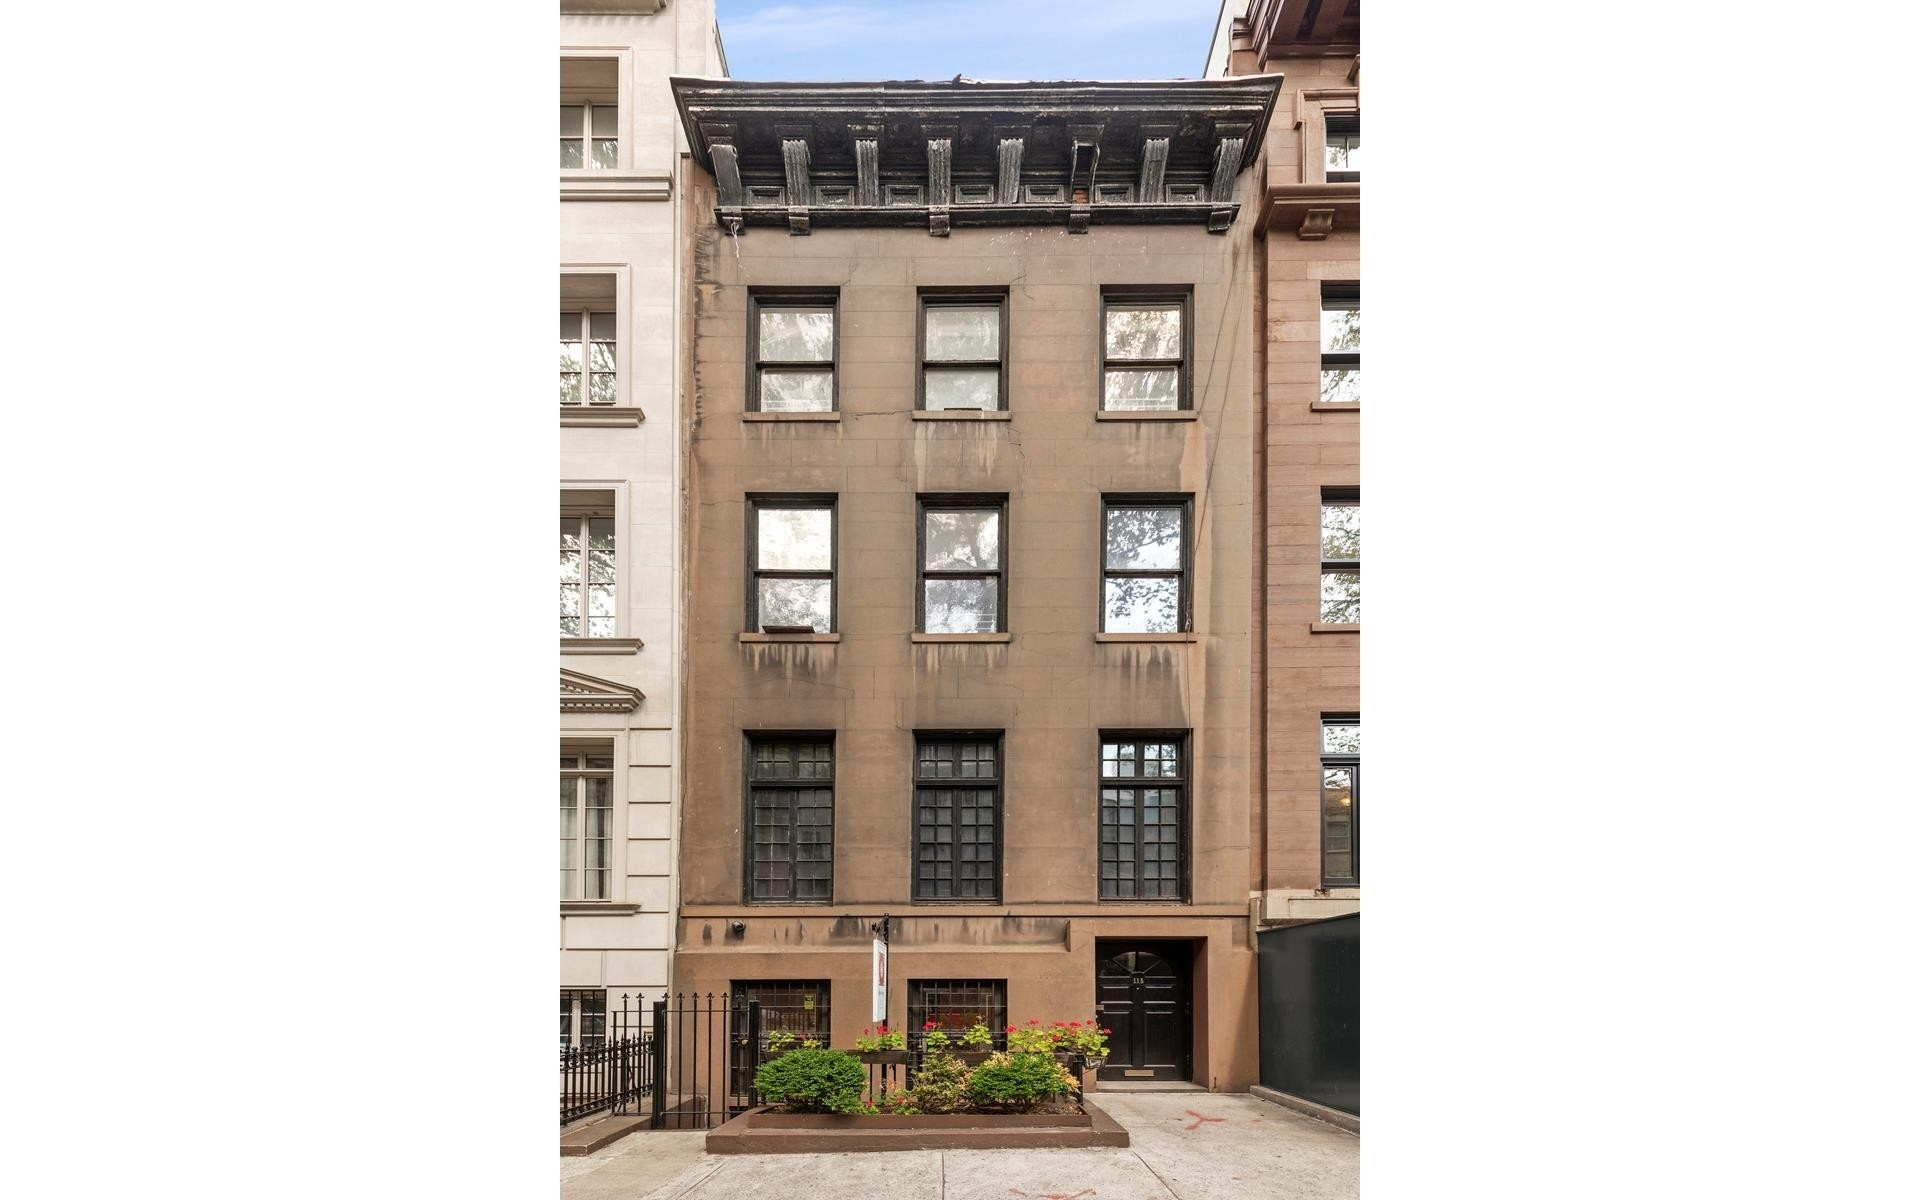 Property en 115 E 64TH ST , TOWNHOUSE Lenox Hill, New York, NY 10065